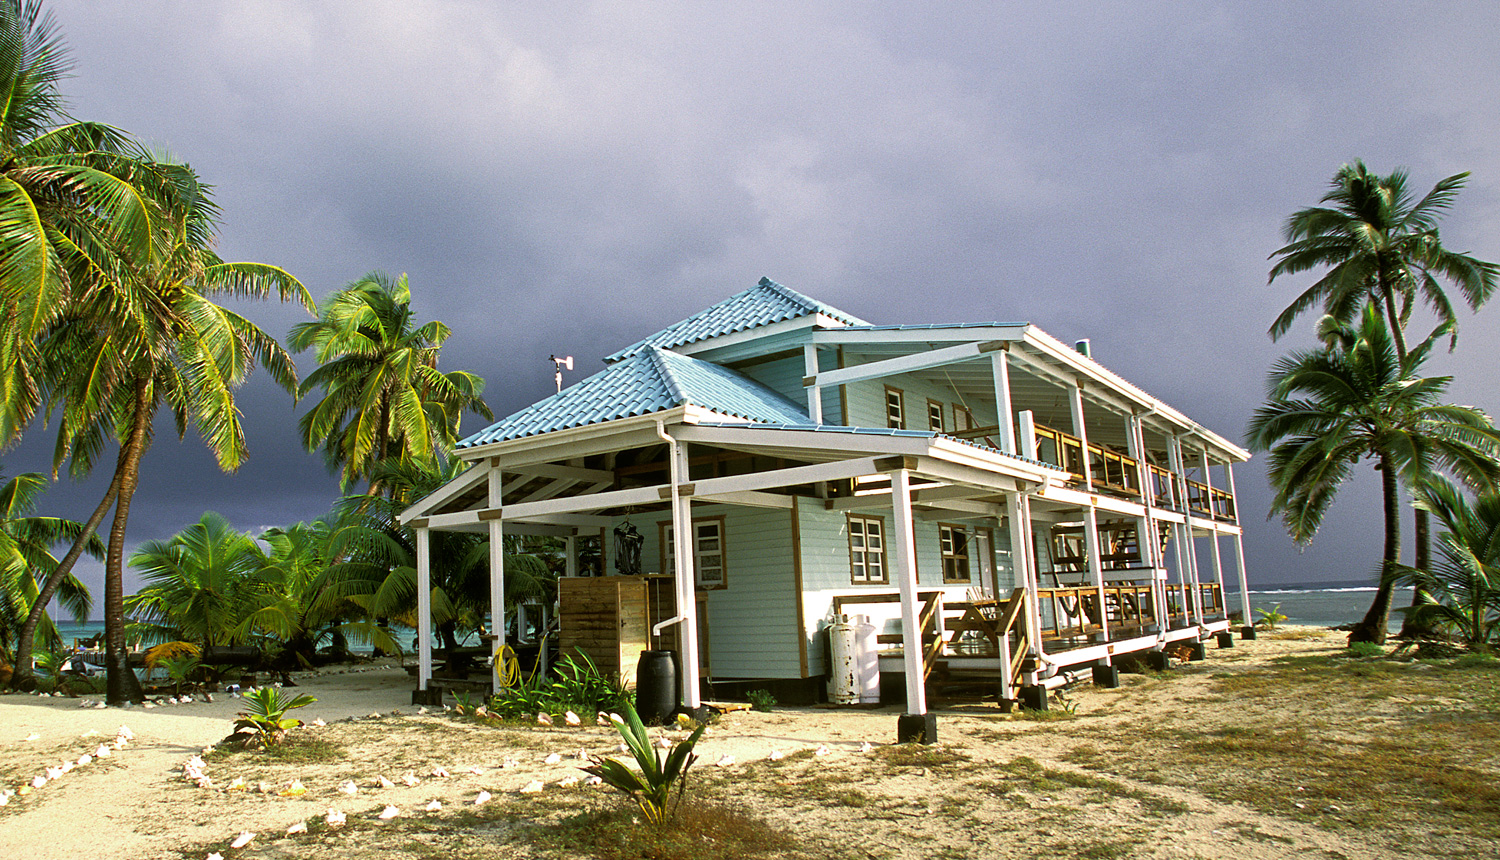 The Carrie Bow Cay Marine Field Station supports marine research year-round.<div class='credit'><strong>Credit:</strong> The Carrie Bow Cay Marine Field Station supports marine research year-round.</div>